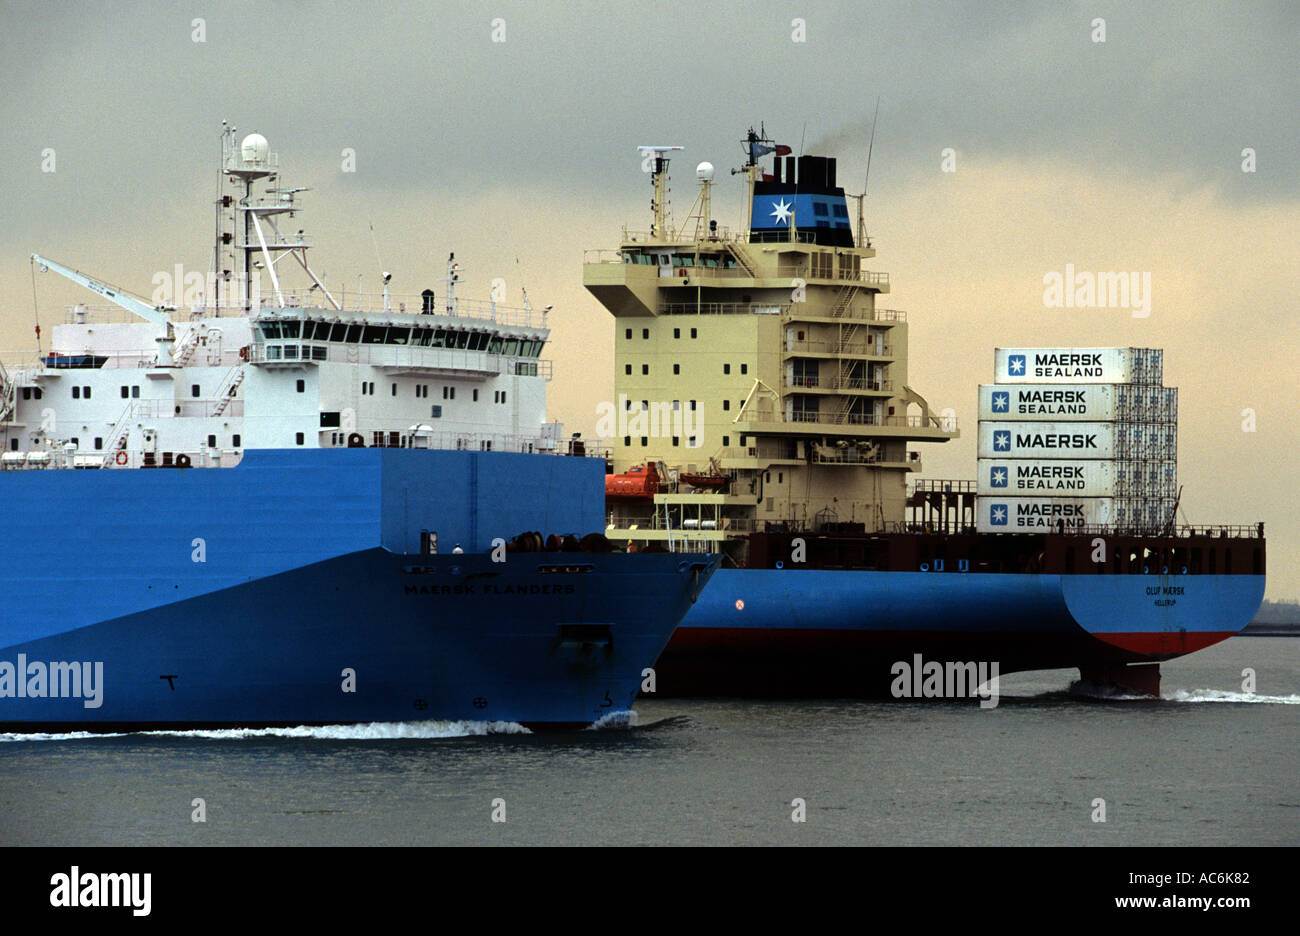 Maersk container ships, Port of Felixstowe, Suffolk, UK. - Stock Image